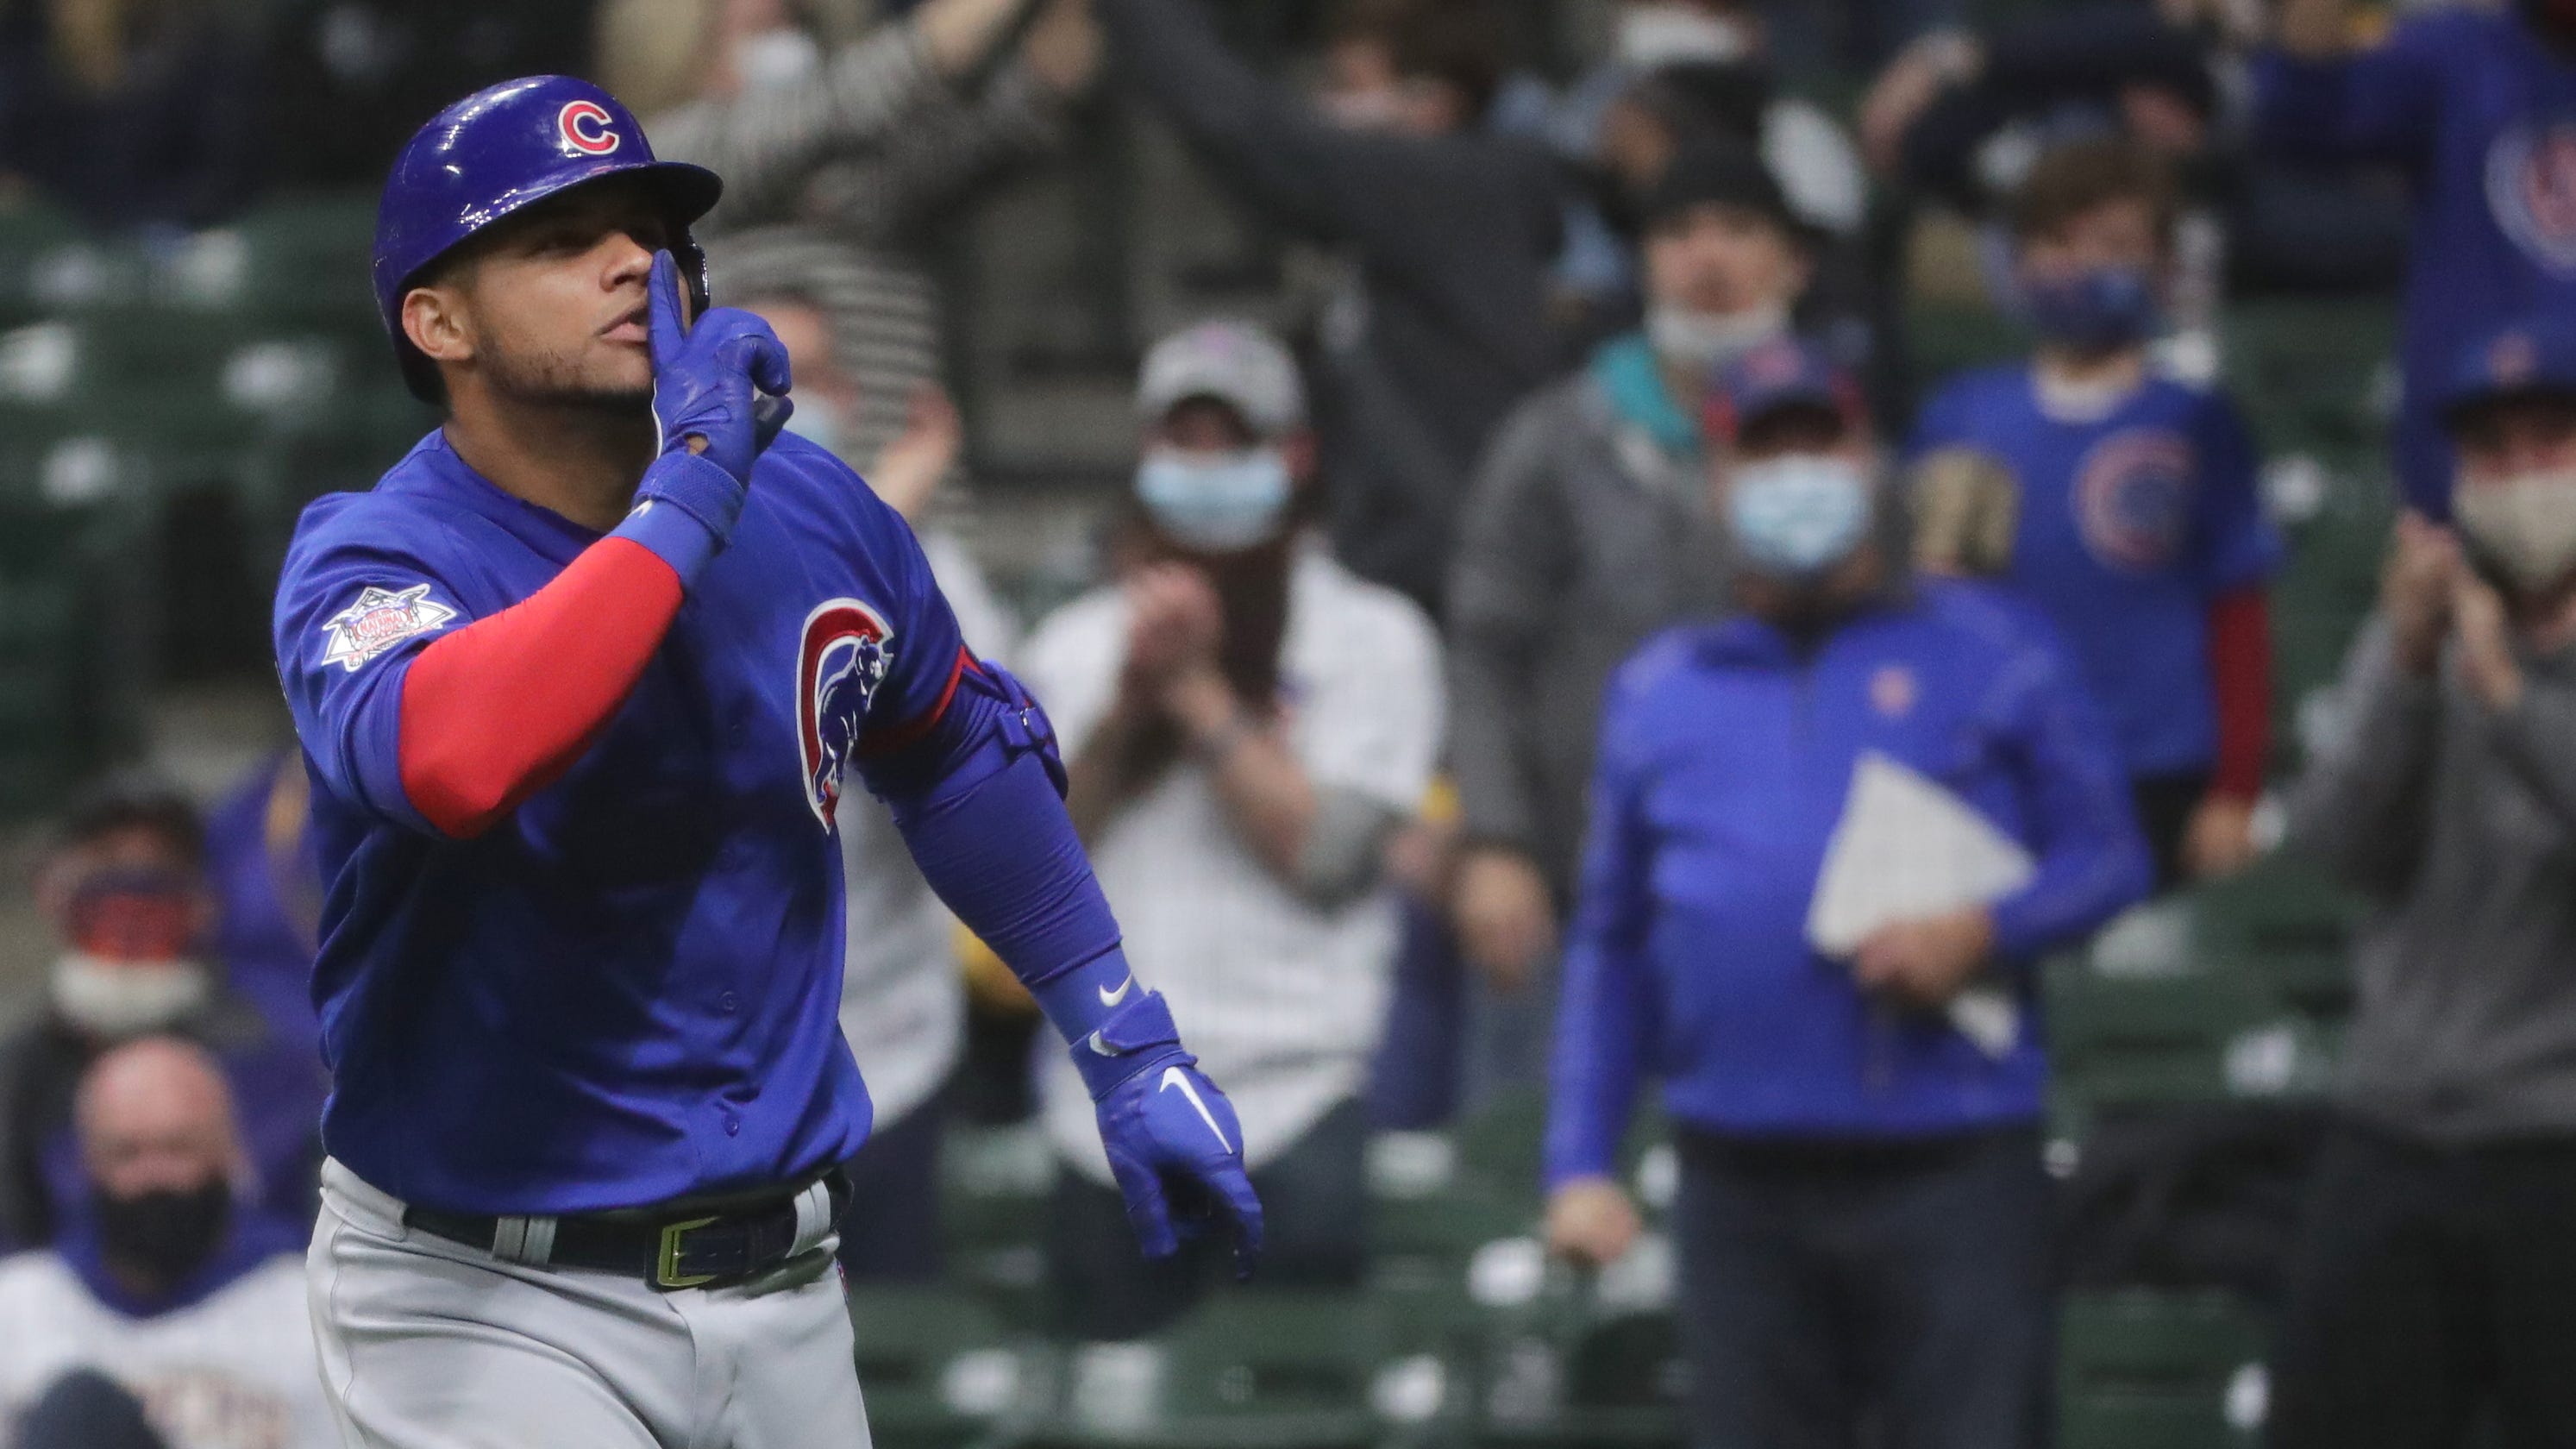 Brewers-Cubs rivalry heats after HBPs, Willson Contreras' home run